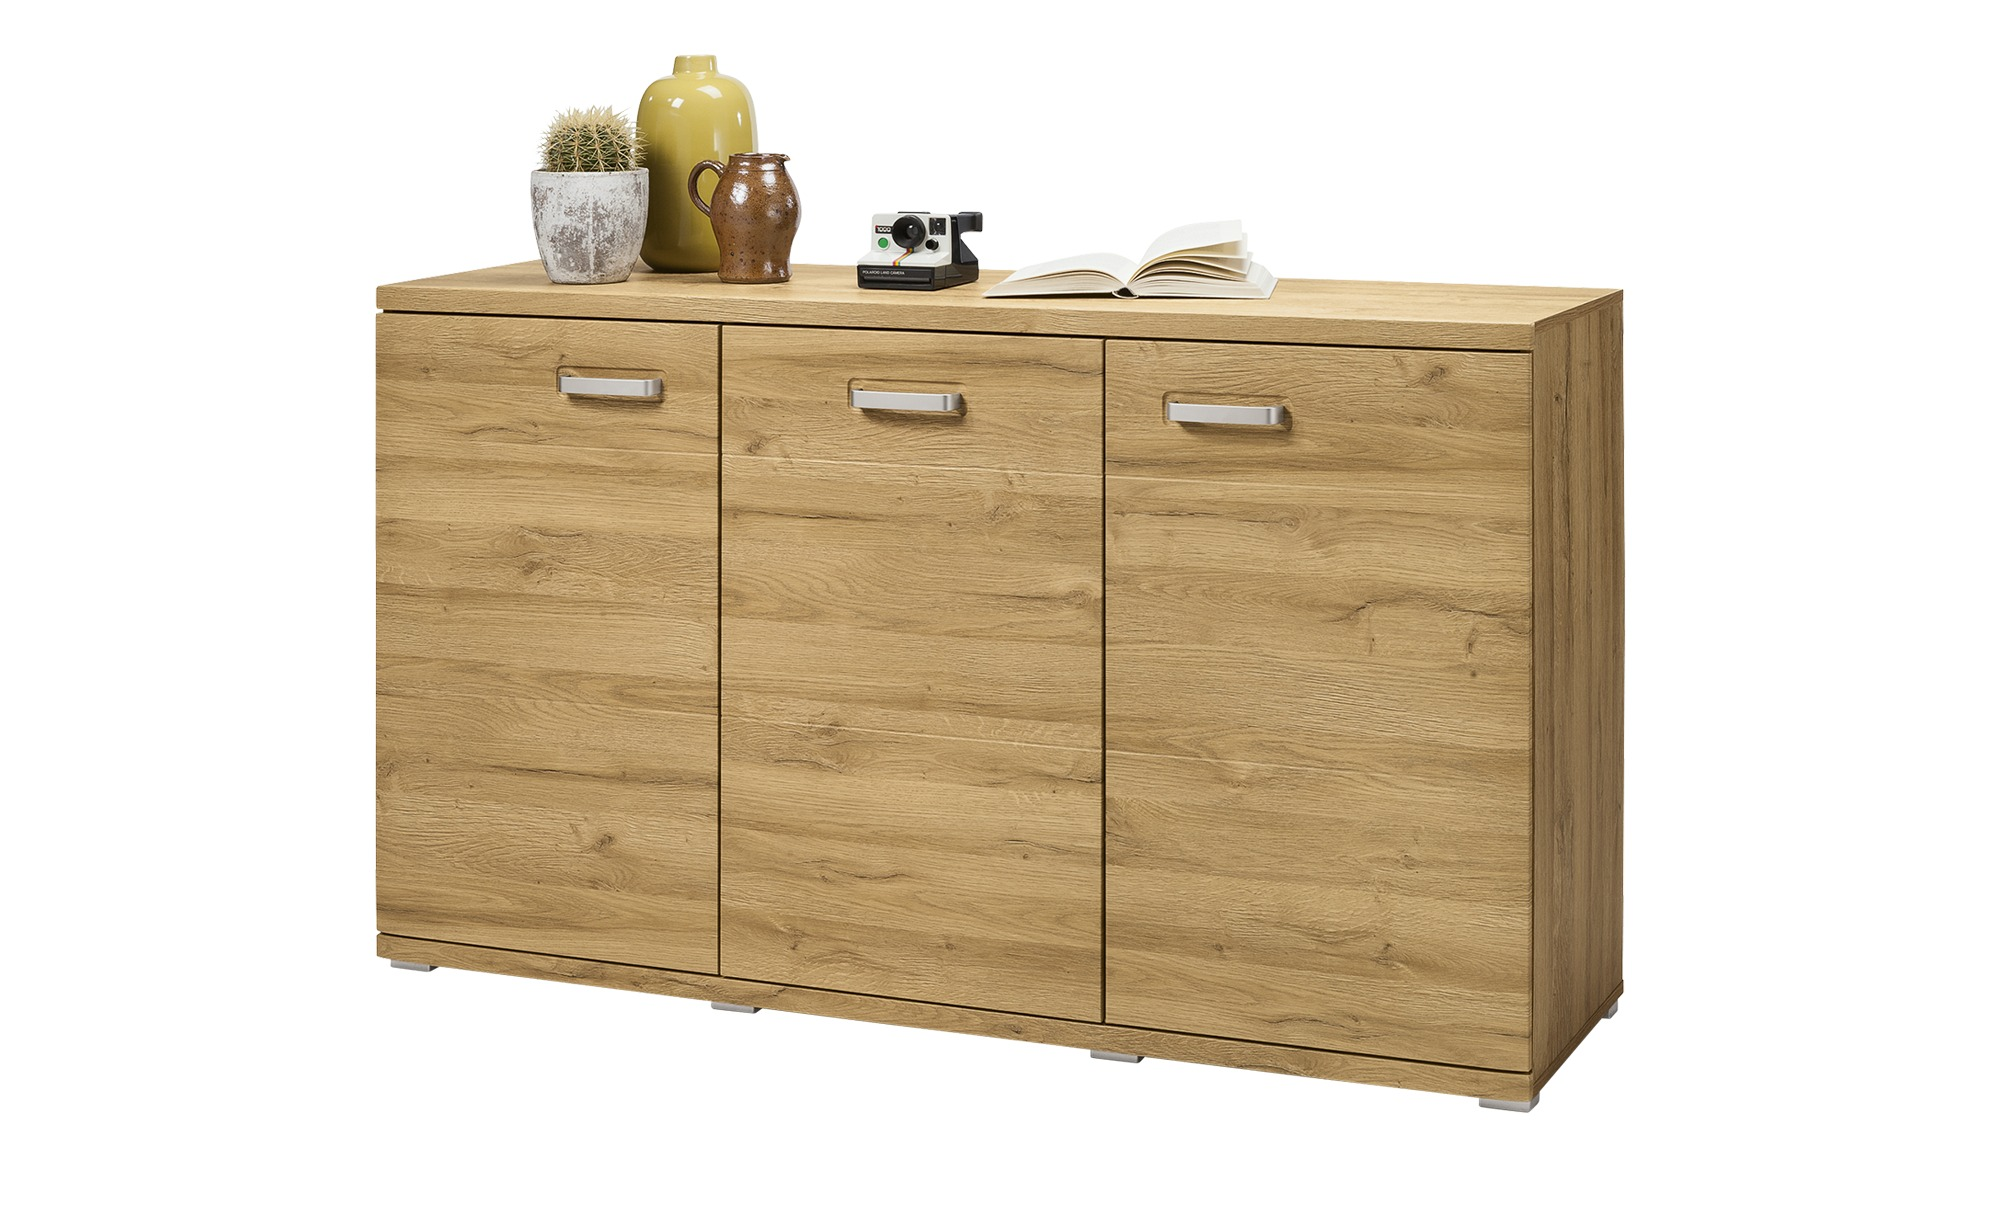 set one by Musterring Sideboard  Madison ¦ holzfarben ¦ Maße (cm): B: 150 H: 89 T: 44 Kommoden & Sideboards > Sideboards - Höffner